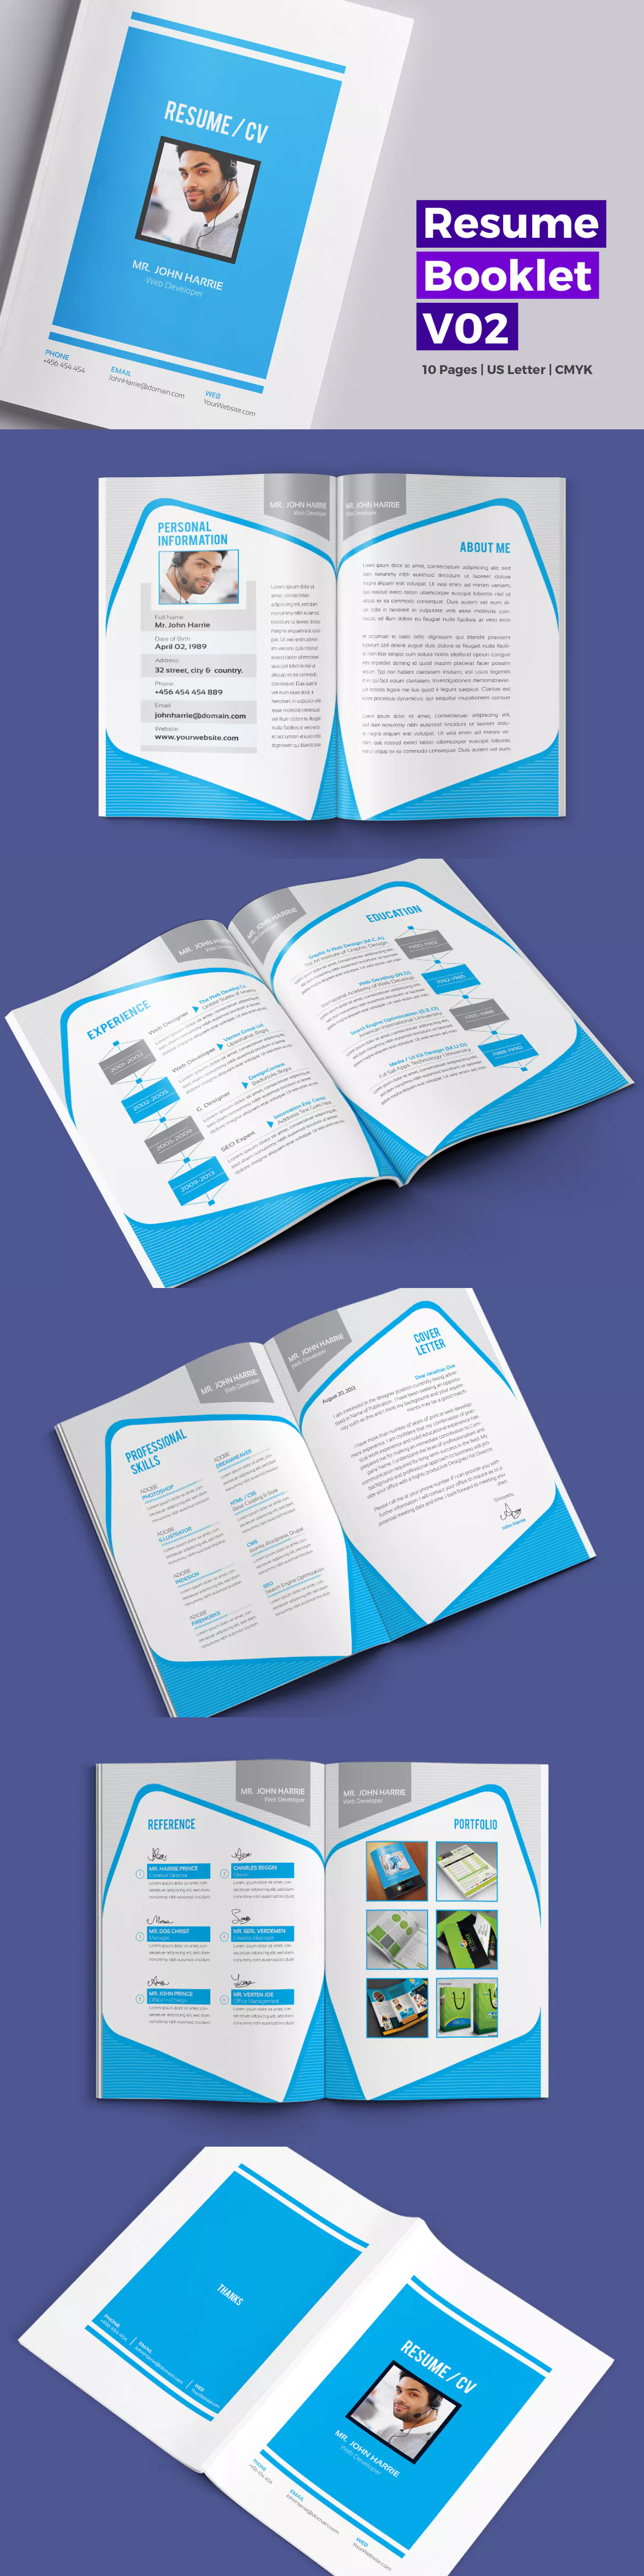 10 Pages Resume / CV / Bio Data Booklet Template InDesign INDD ...